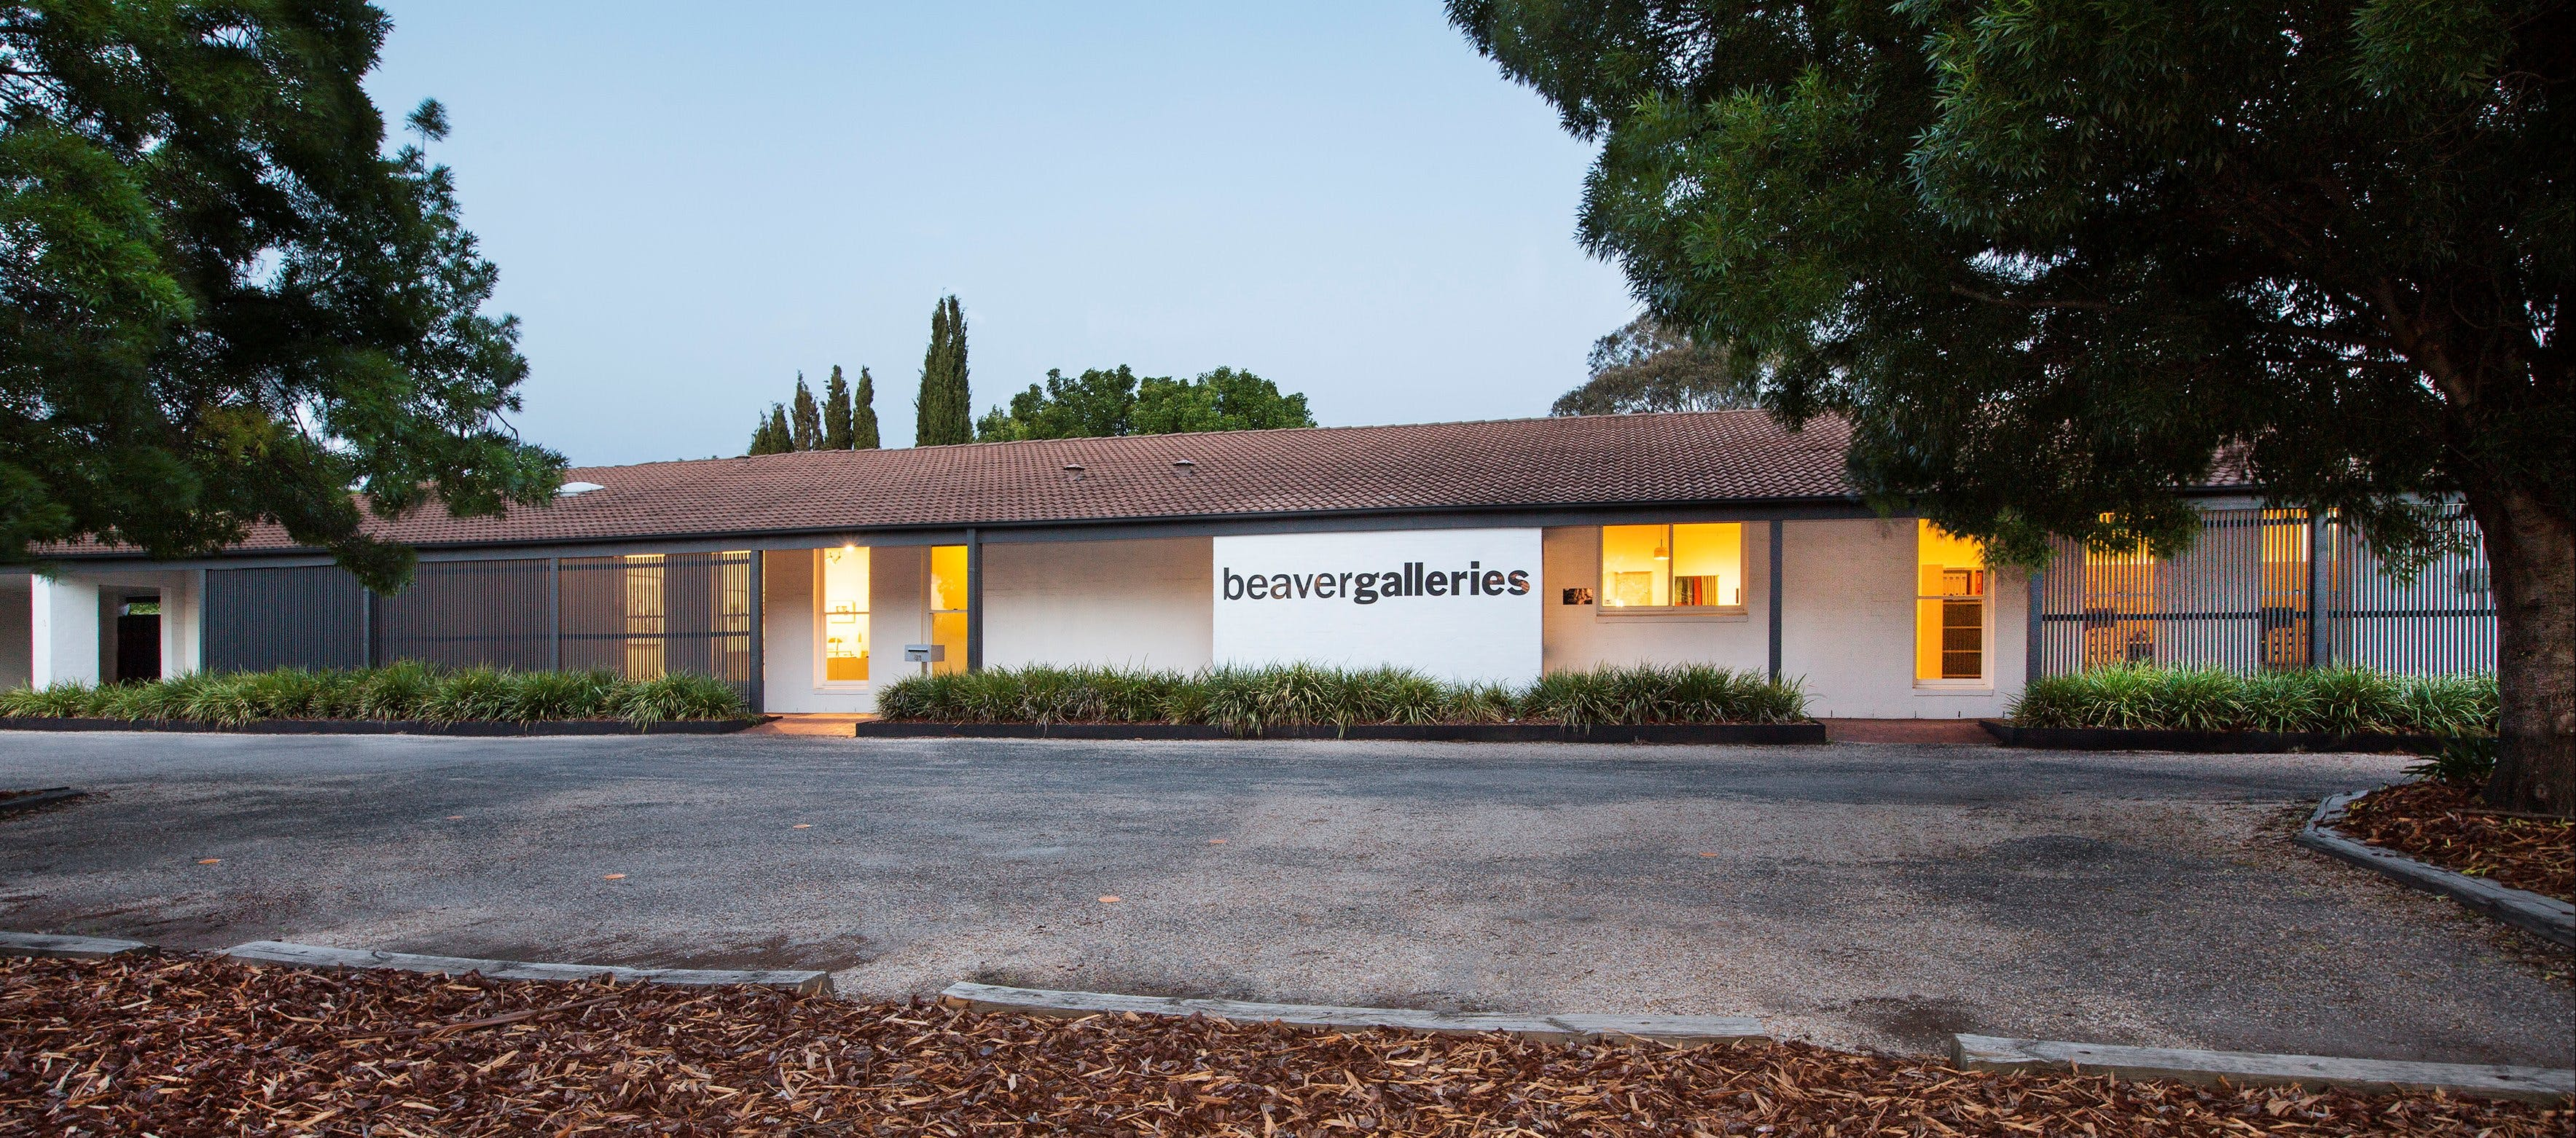 Beaver Galleries - Accommodation Port Macquarie